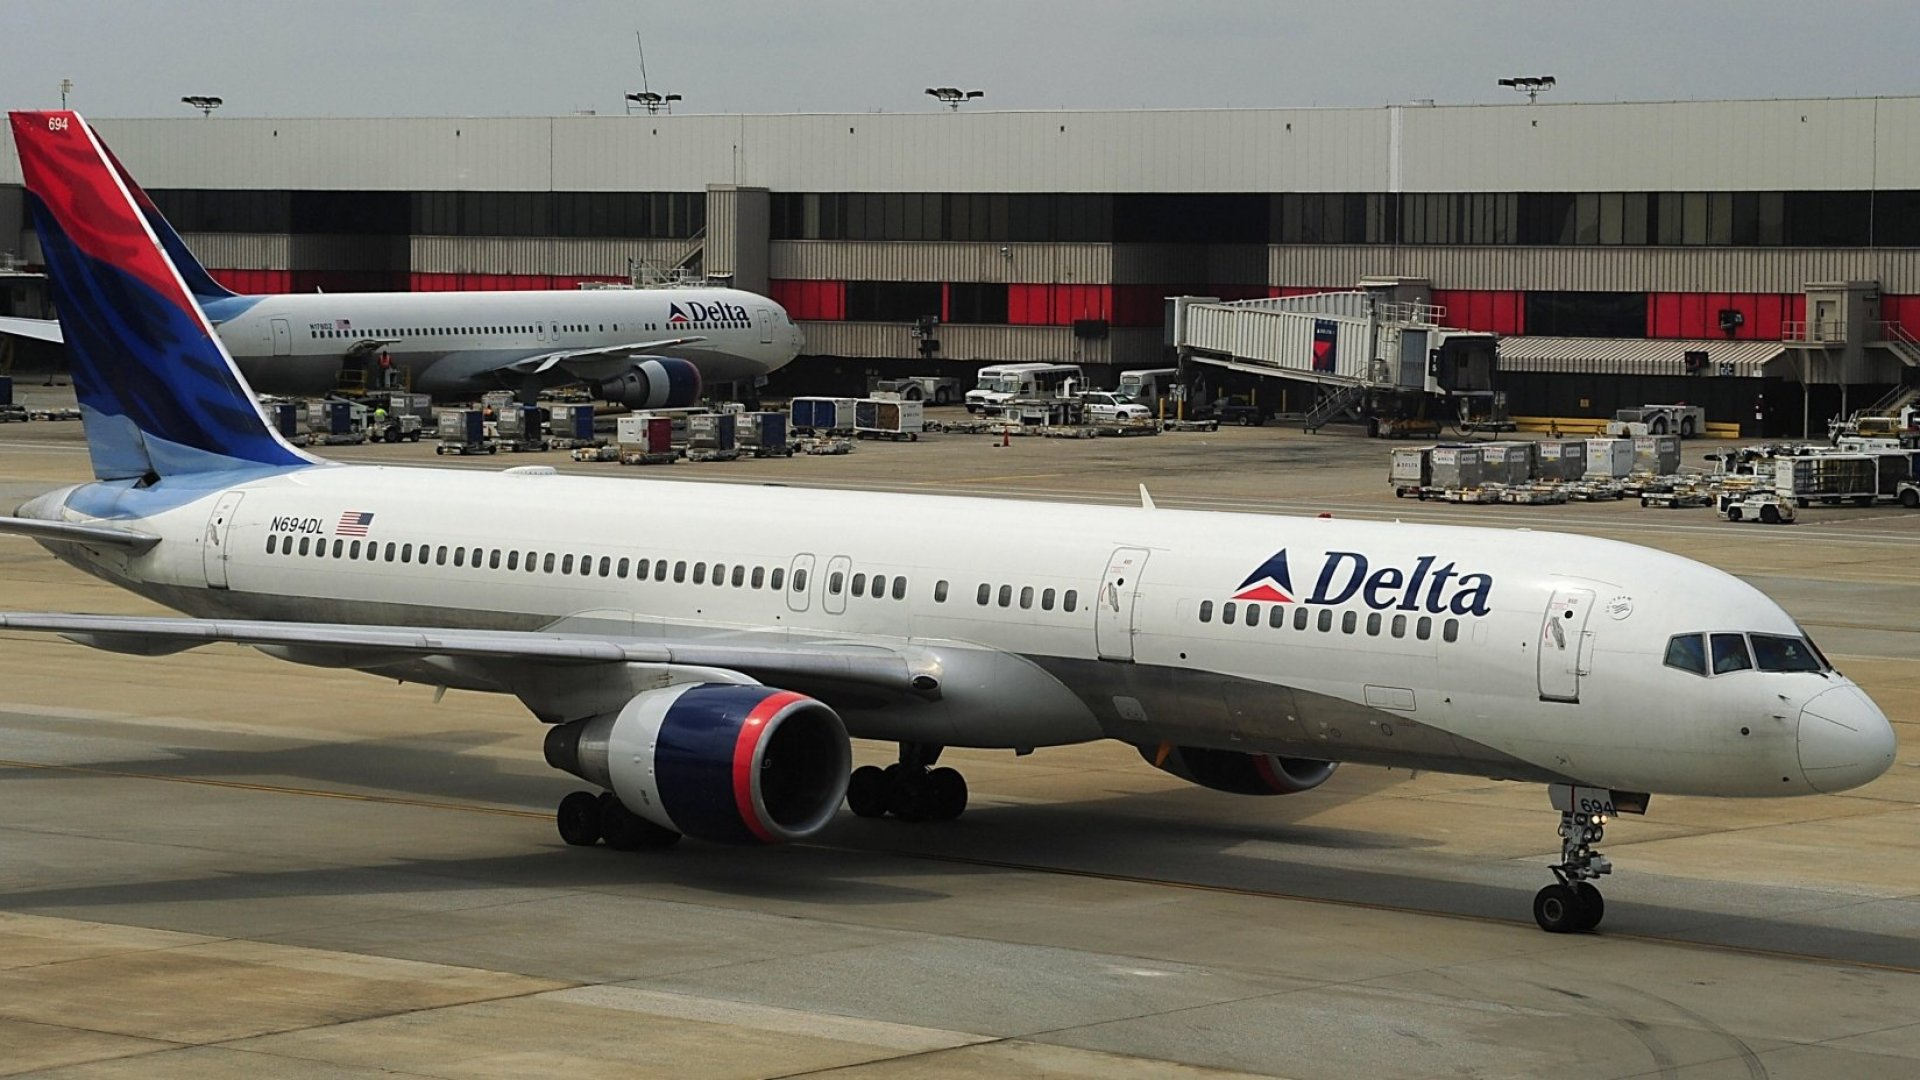 Delta Air Lines Just Revealed Stunning Data Breach (and Your Payment Information May Have Been Exposed)